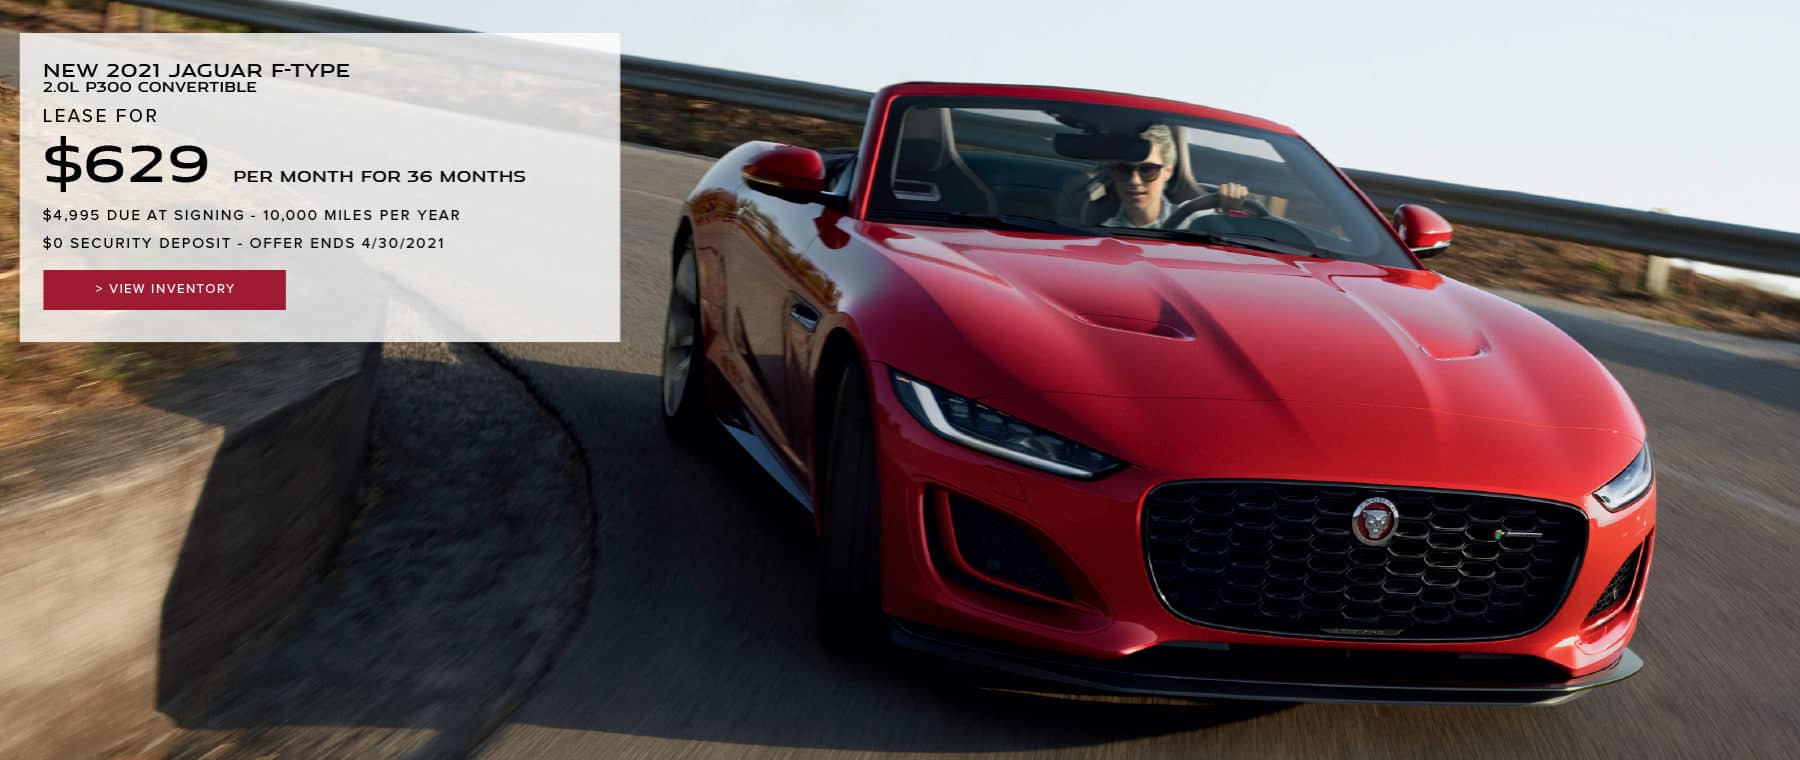 NEW 2021 JAGUAR F-TYPE 2.0L P300 CONVERTIBLE. $629 PER MONTH. 36 MONTH LEASE TERM. $4,995 CASH DUE AT SIGNING. $0 SECURITY DEPOSIT. 7,500 MILES PER YEAR. EXCLUDES RETAILER FEES, TAXES, TITLE AND REGISTRATION FEES, PROCESSING FEE AND ANY EMISSION TESTING CHARGE. OFFER ENDS 4/30/2021. VIEW INVENTORY. RED JAGUAR F-TYPE CONVERTIBLE DRIVING DOWN ROAD.